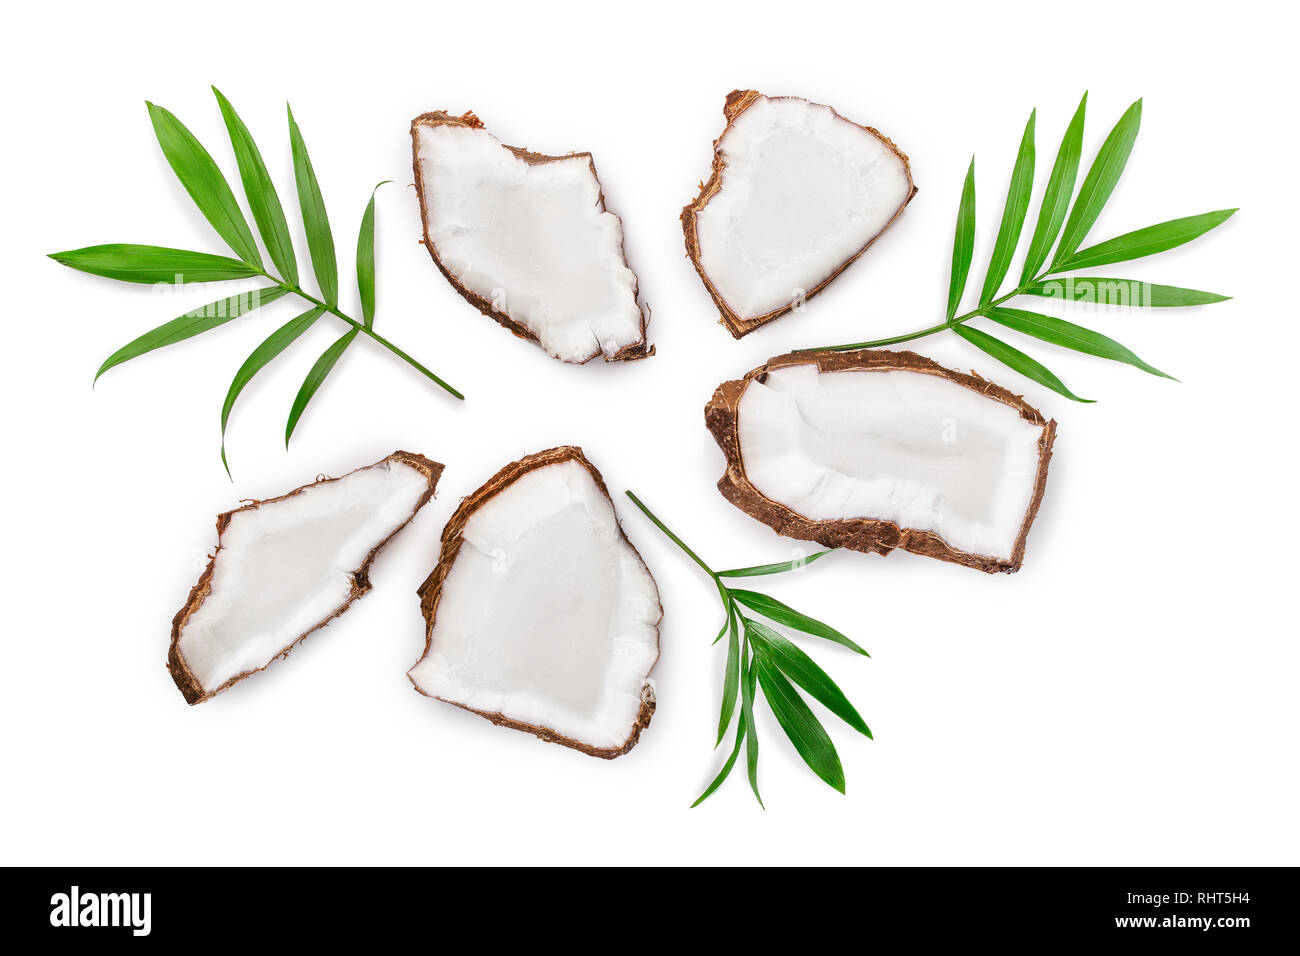 piece of coconut with leaves isolated on white background. Top view. Flat lay - Stock Image